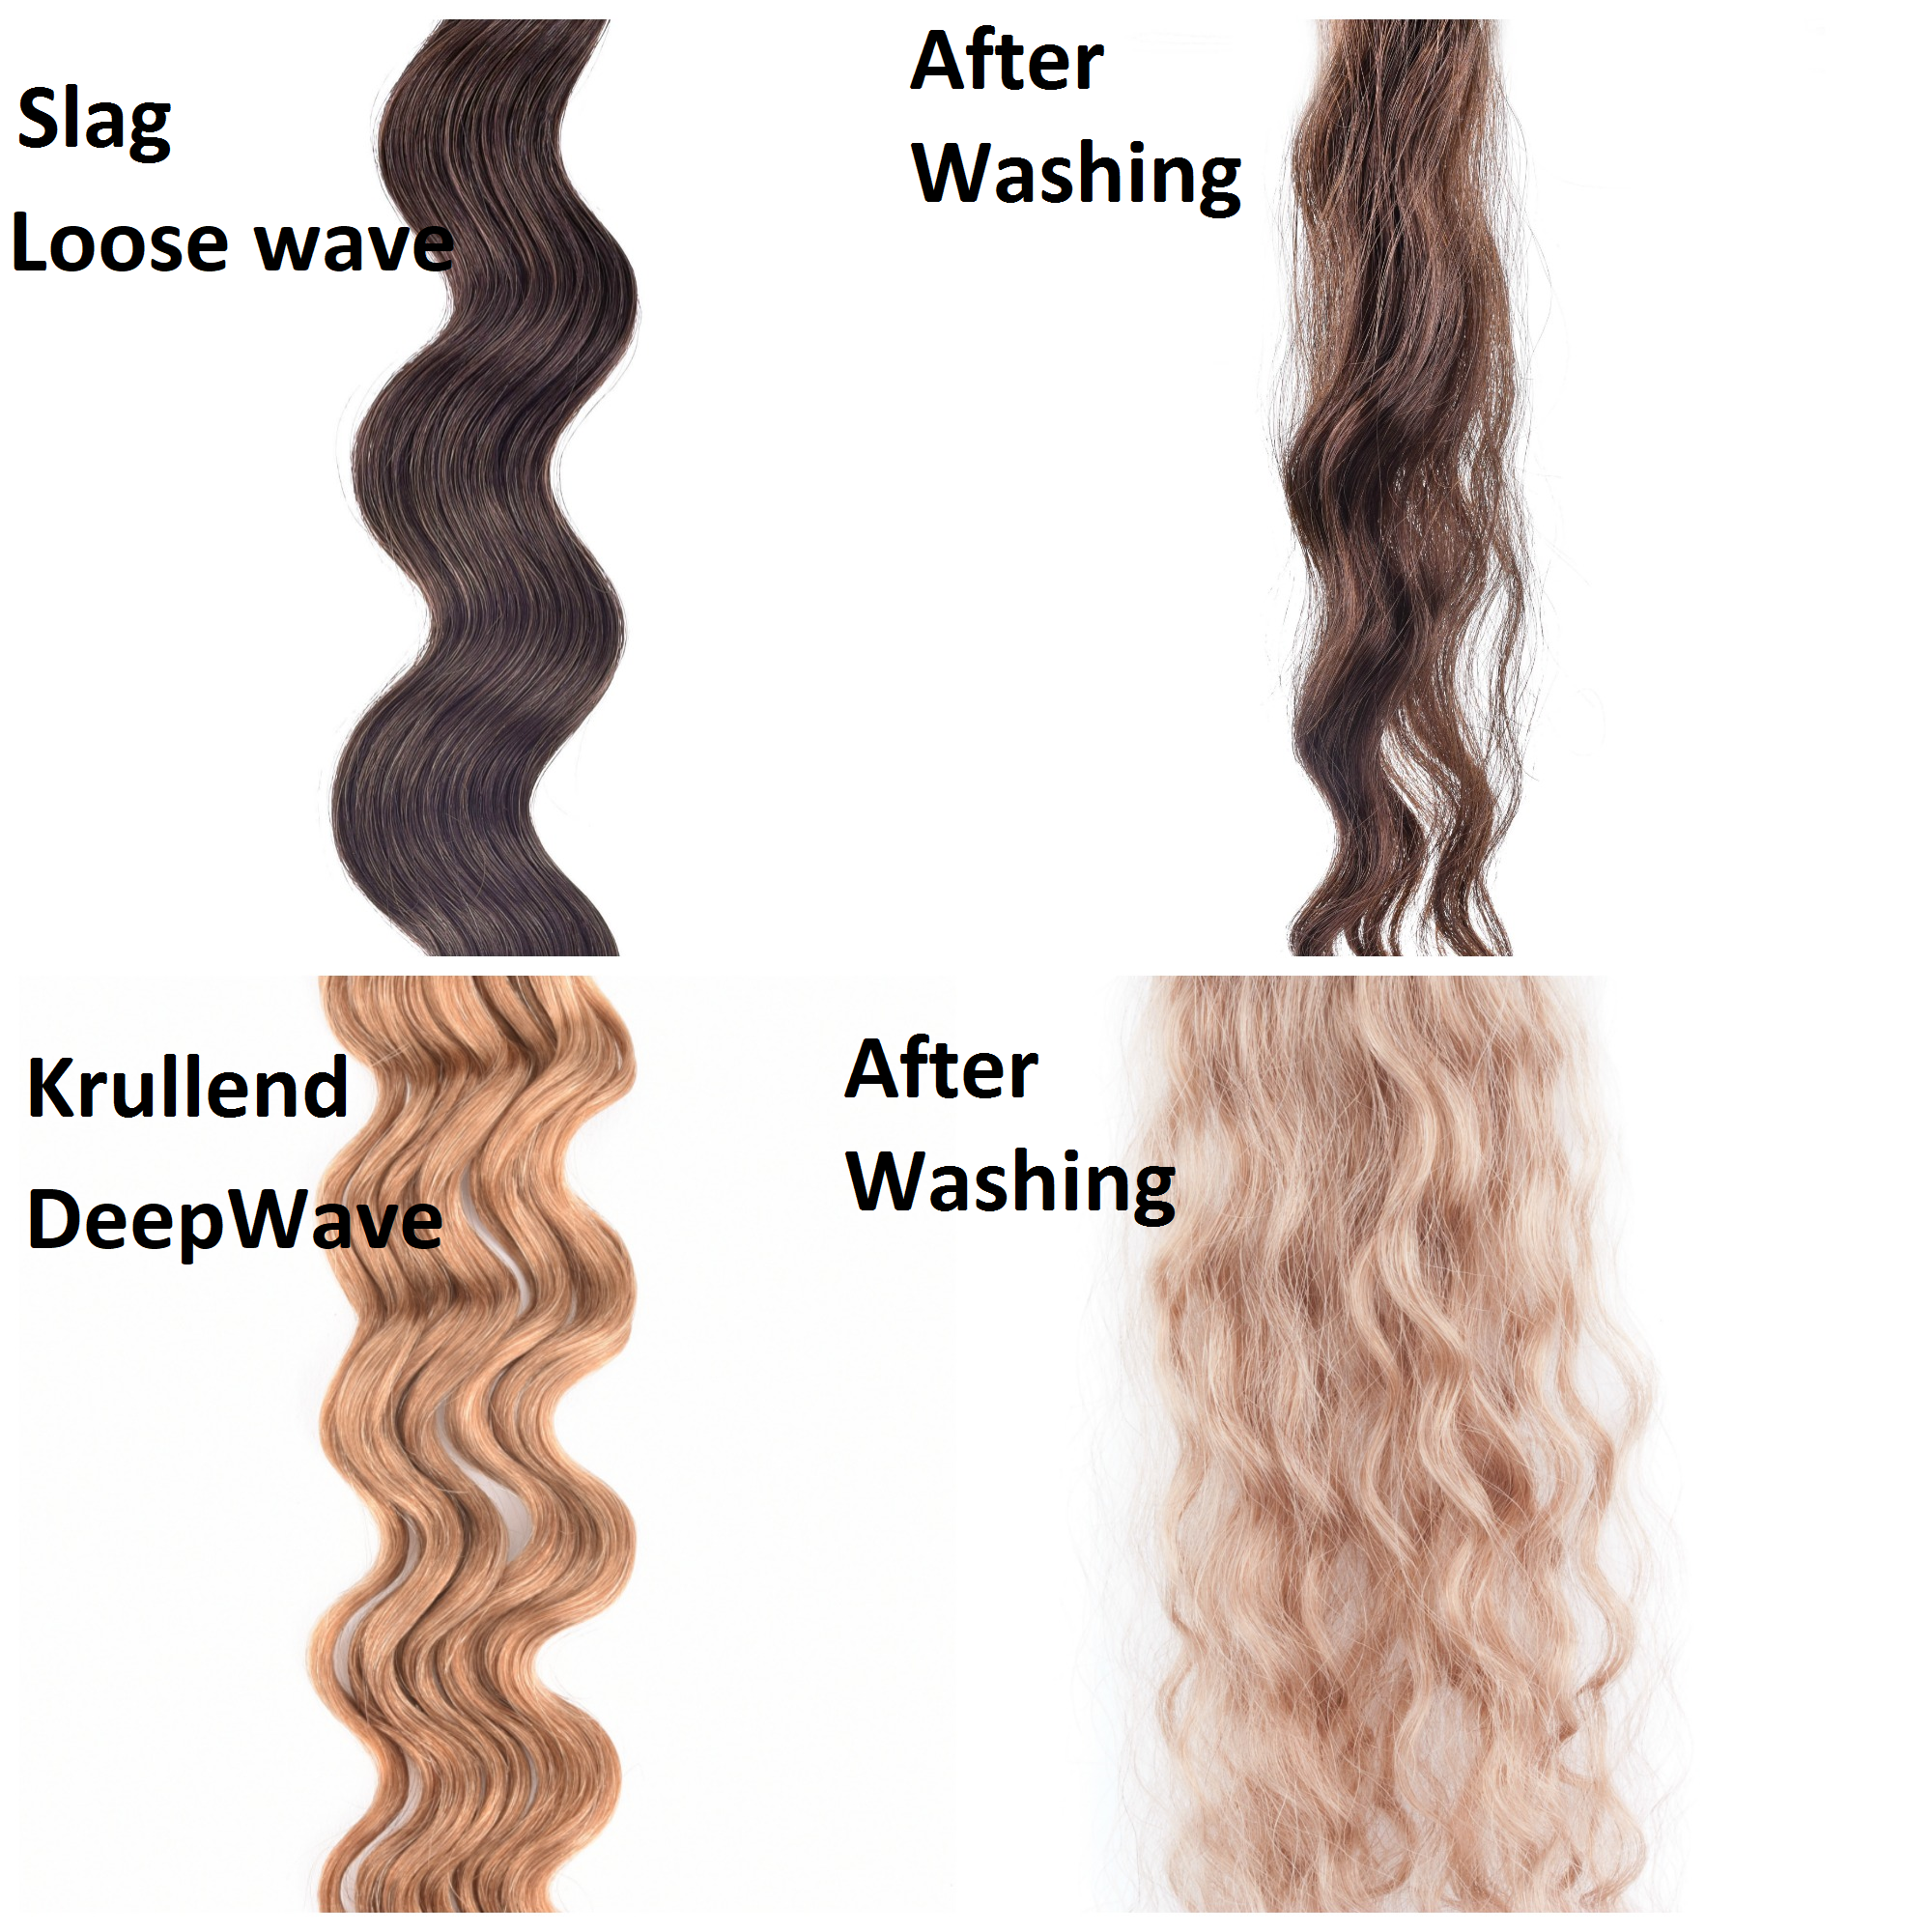 SilverFox Wax Extensions Loose Wave 55cm #613 Light Blonde